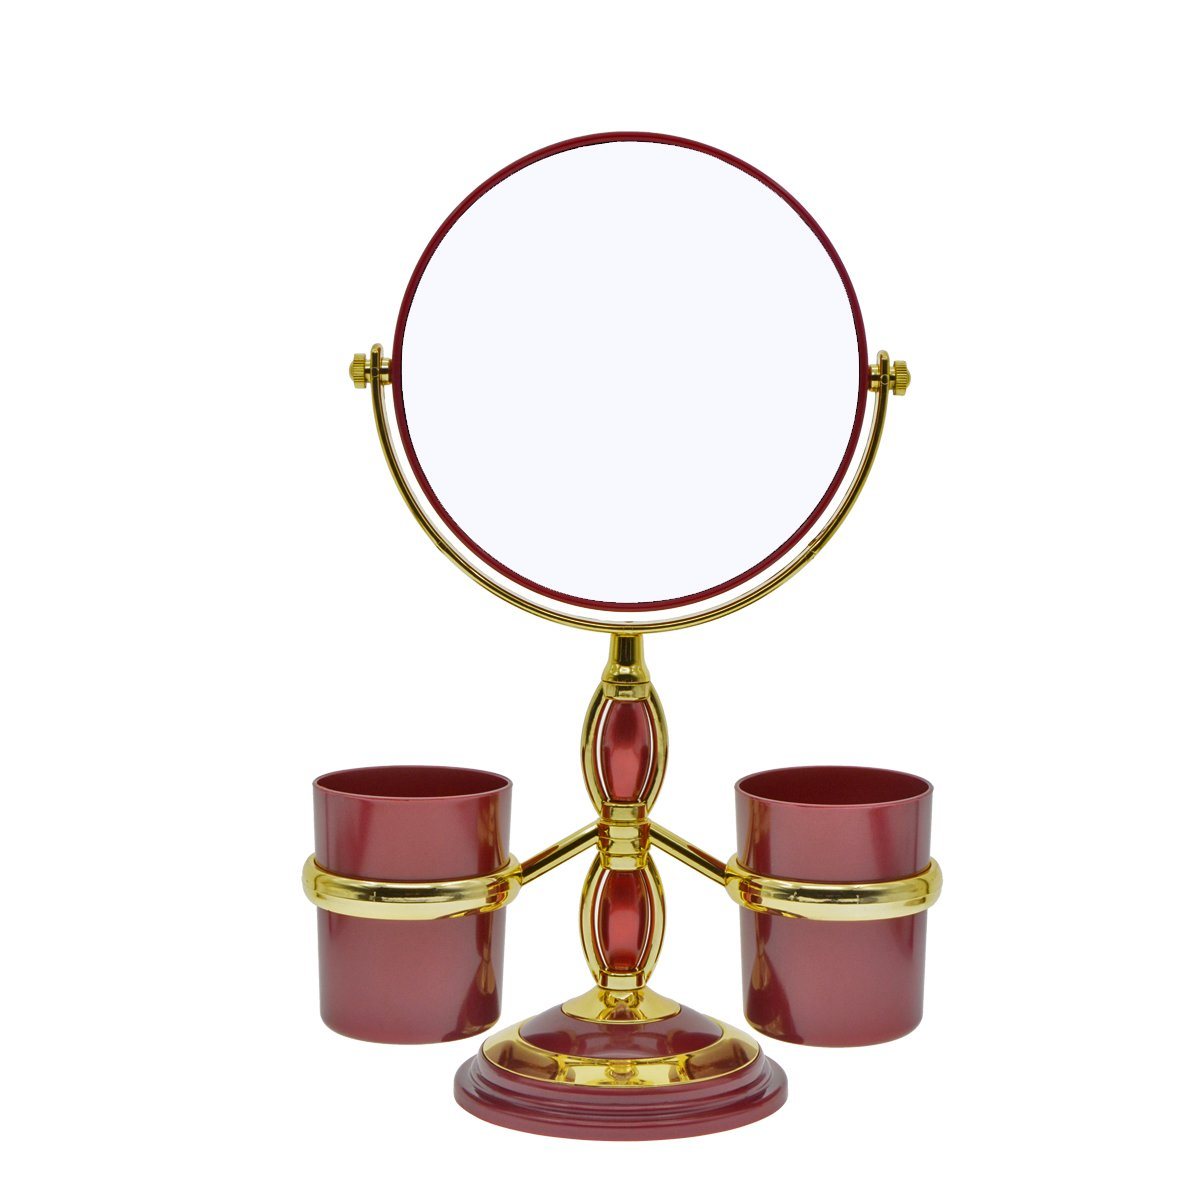 Saim Round Shaped Double Sided Makeup Mirror, 1X/2X Magnifying Cosmetic Mirror with Two Brush Holders for Women Girls - Red